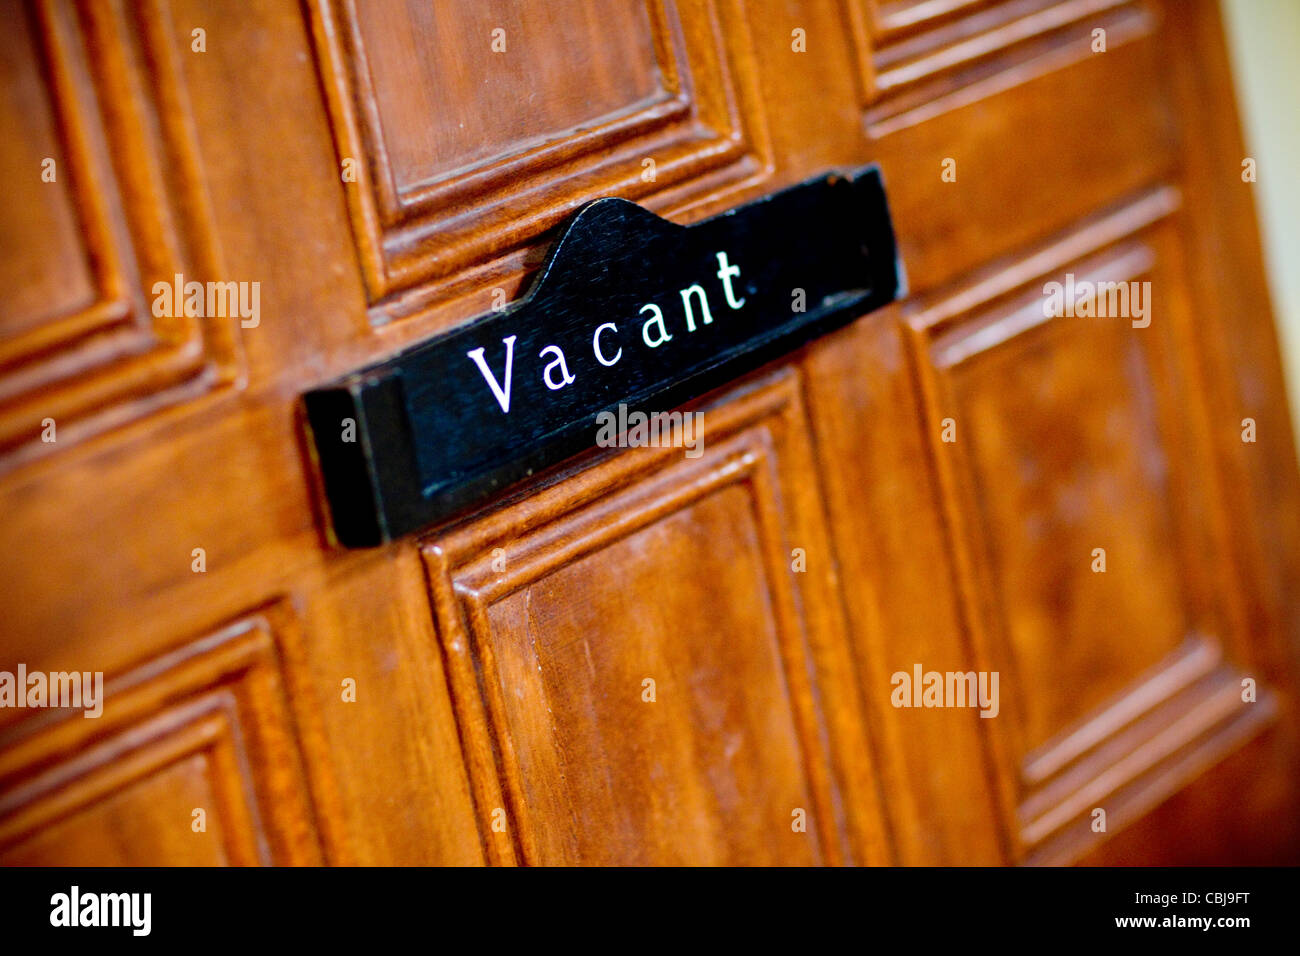 A door sign indicating that a meeting room is Vacant or unoccupied. - Stock Image